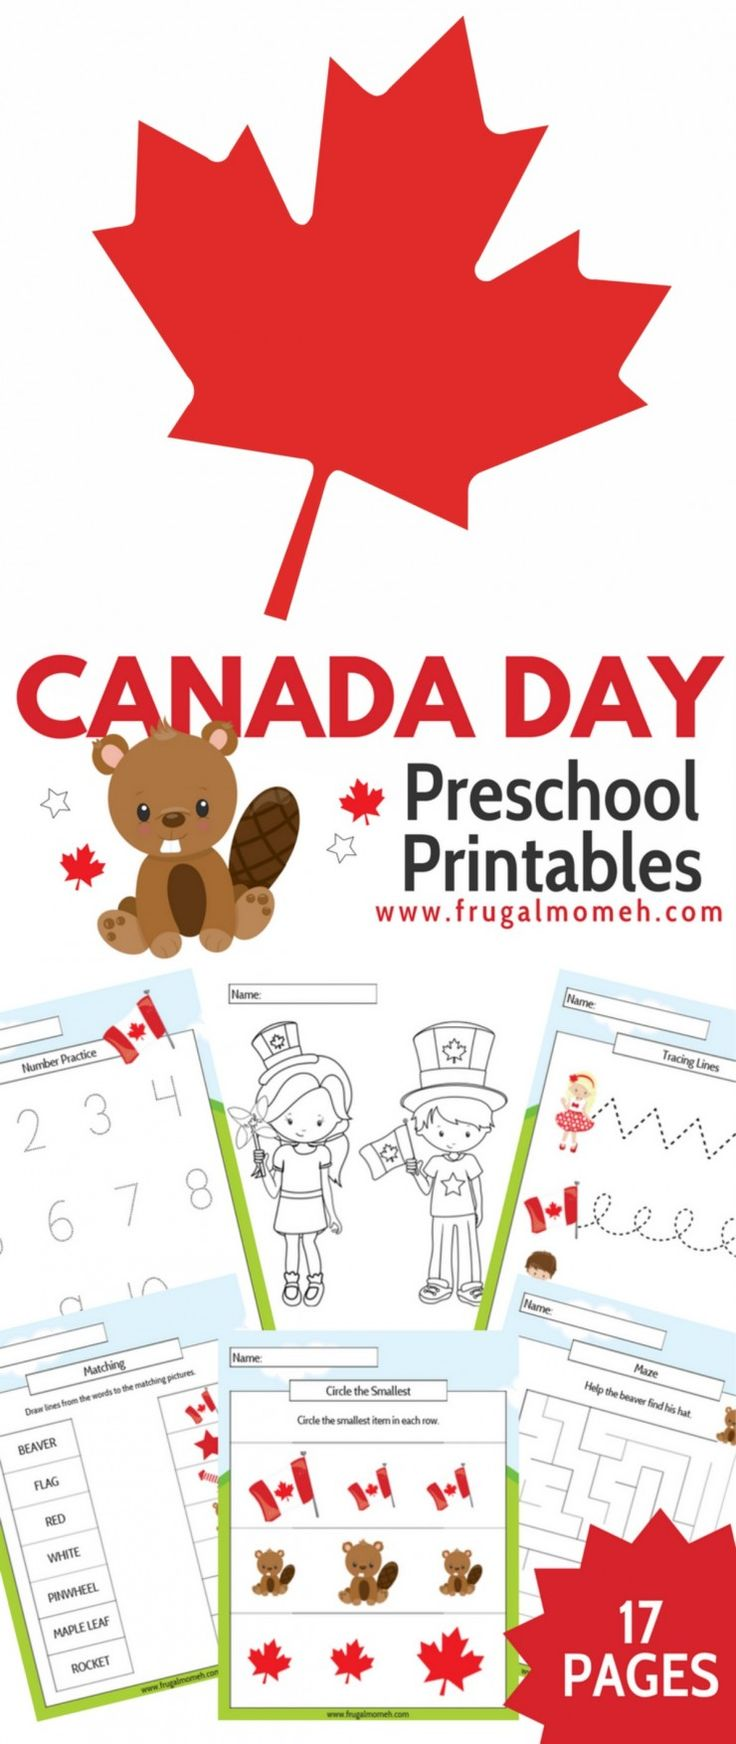 17 Fun Pages of printable Canada Day themed worksheets (for Pre-Kindergarten to Grade 1 aged kids!) You are going to love this Free Printable Canada Day Preschool Activity Book for kids.